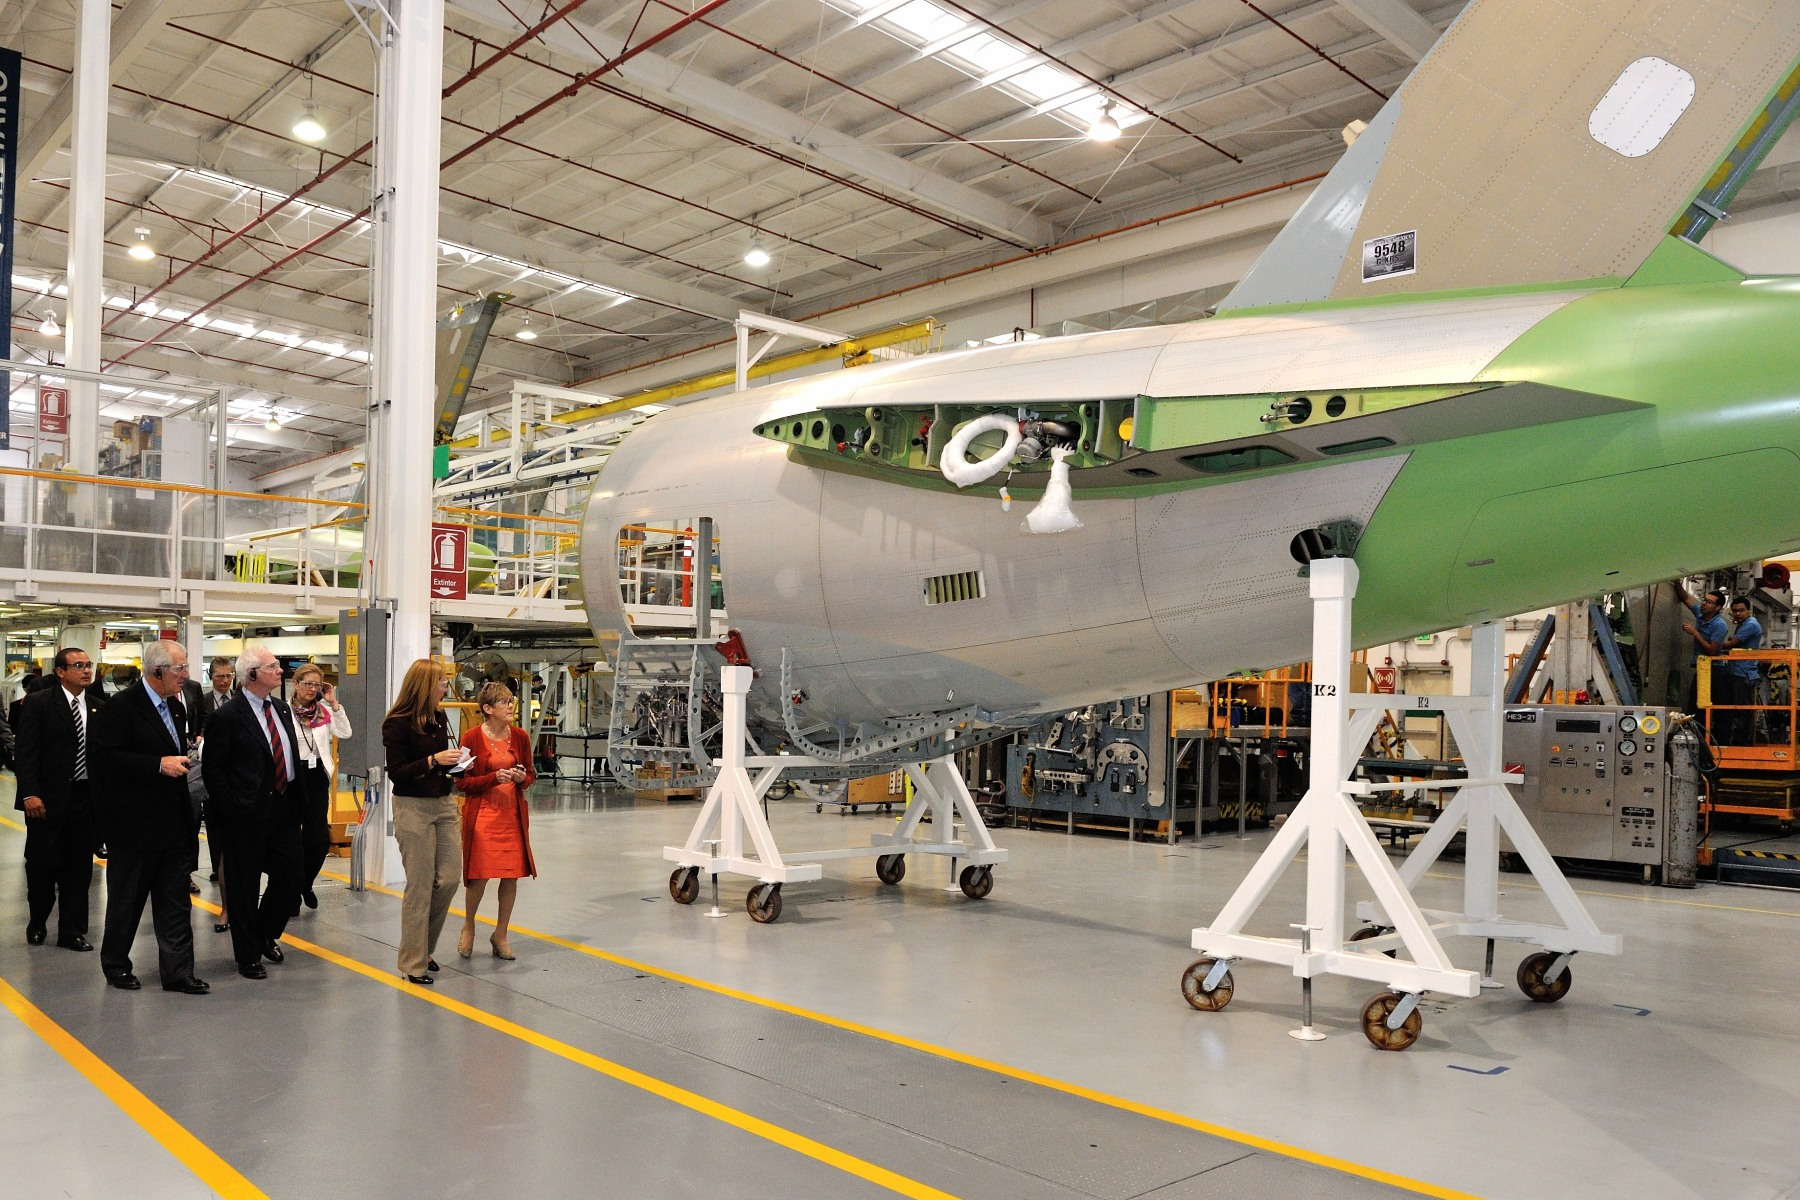 Their Excellencies and the Canadian delegation visited Bombardier Aerospace Facilities in the Querétaro Aerospace Park.